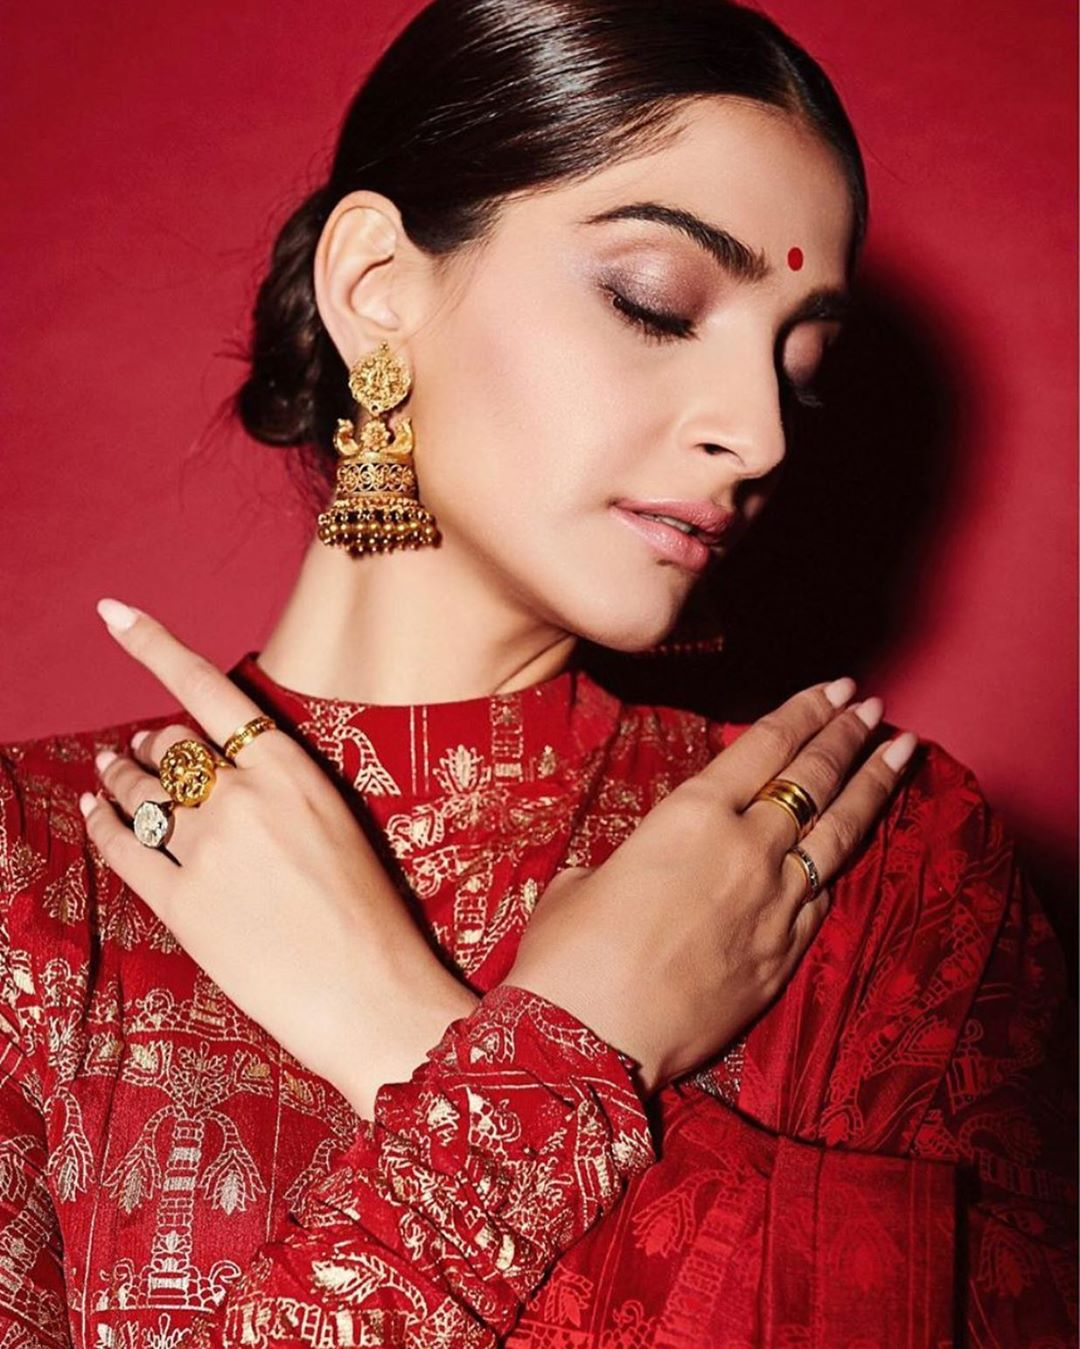 Sonam Kapoor in a Red Anarkali Suit with Dupatta from Masaba's Collection